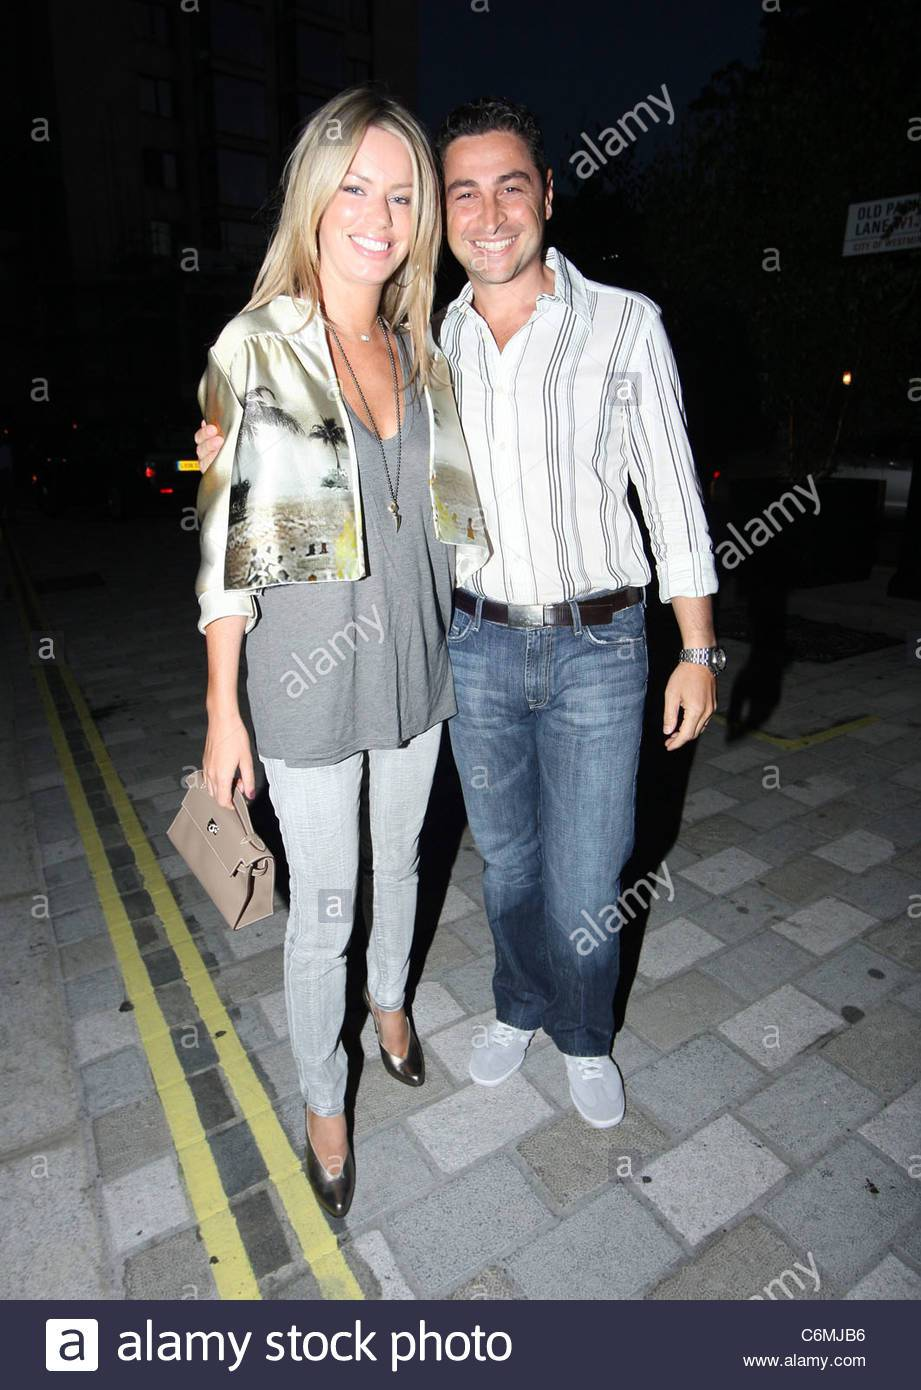 caroline stanbury husband - Who is Caroline Stanbury from Ladies of London and how does she